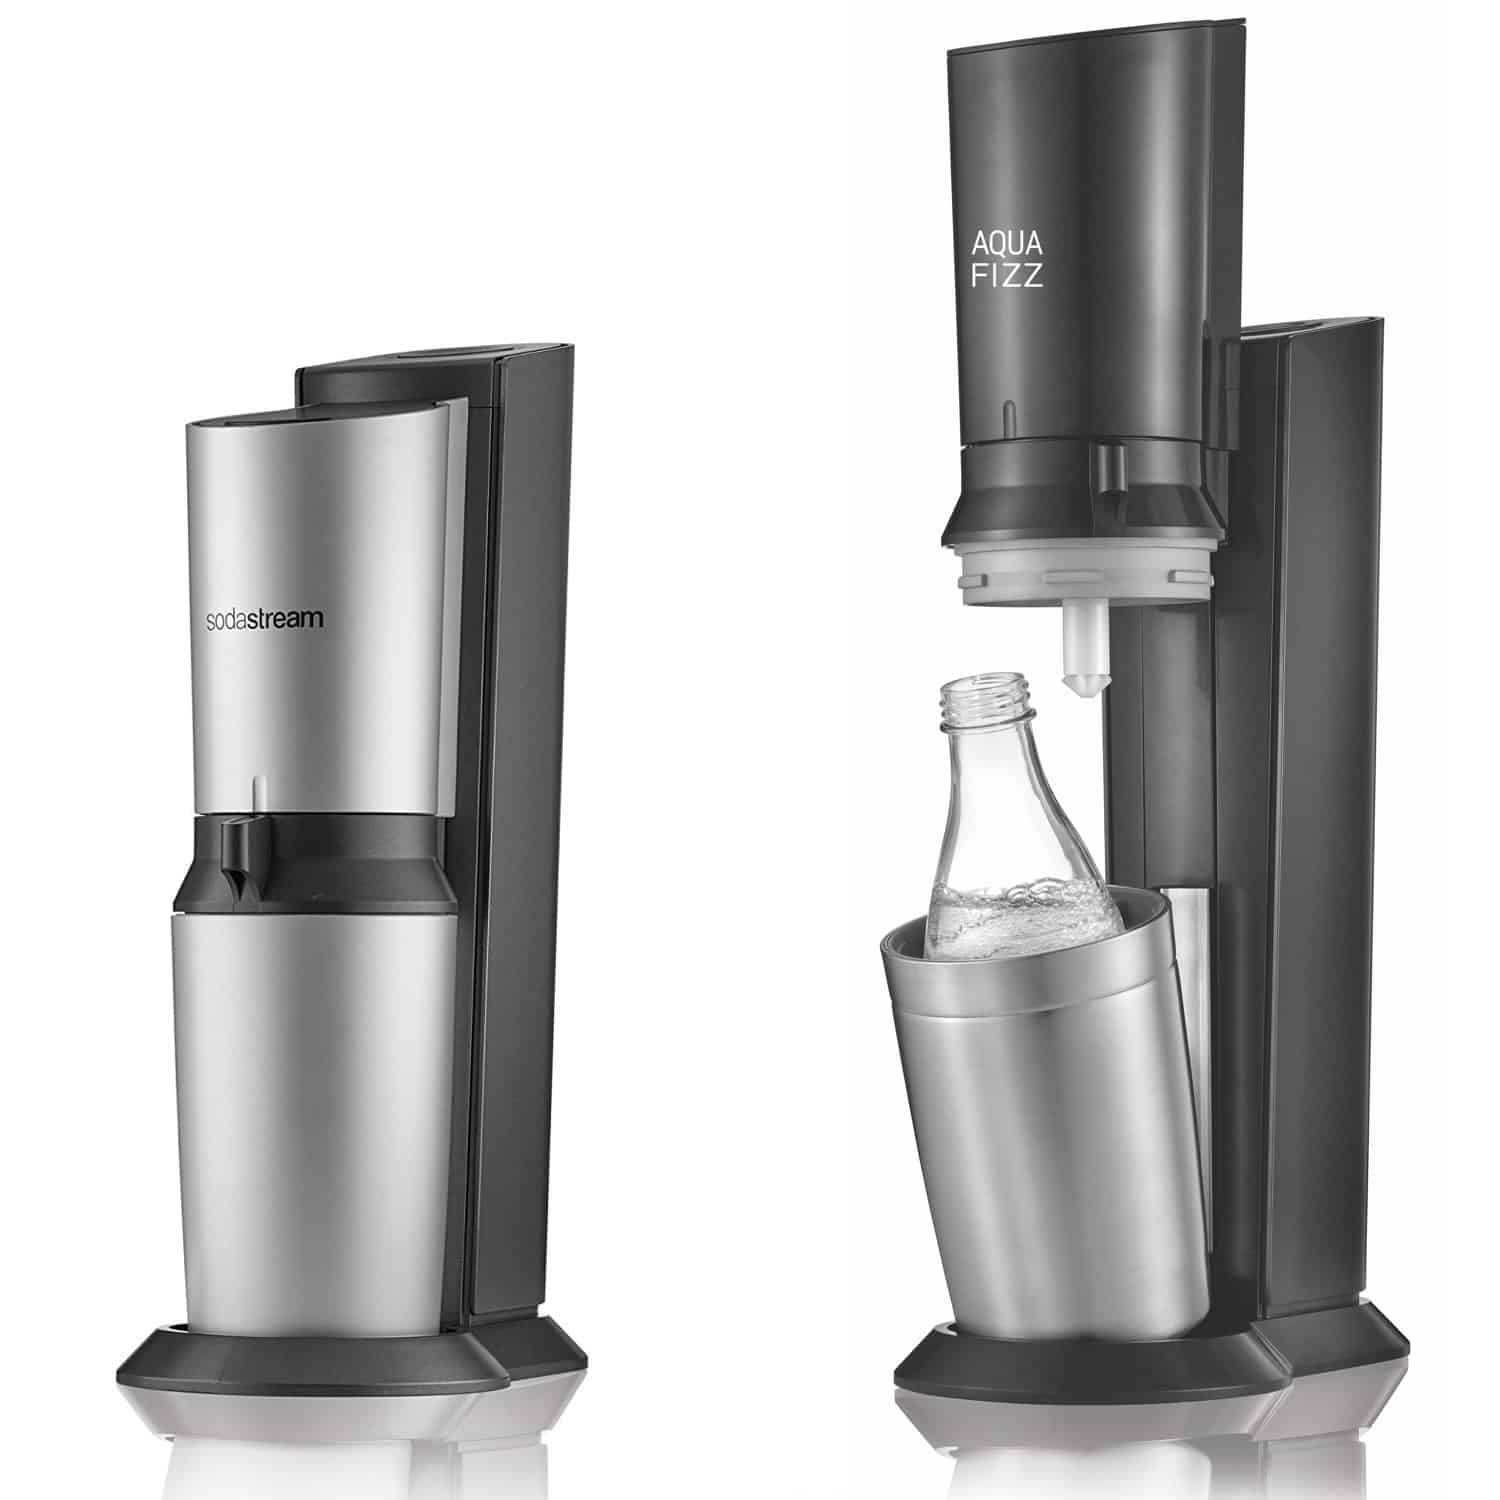 sodastream aqua fizz review